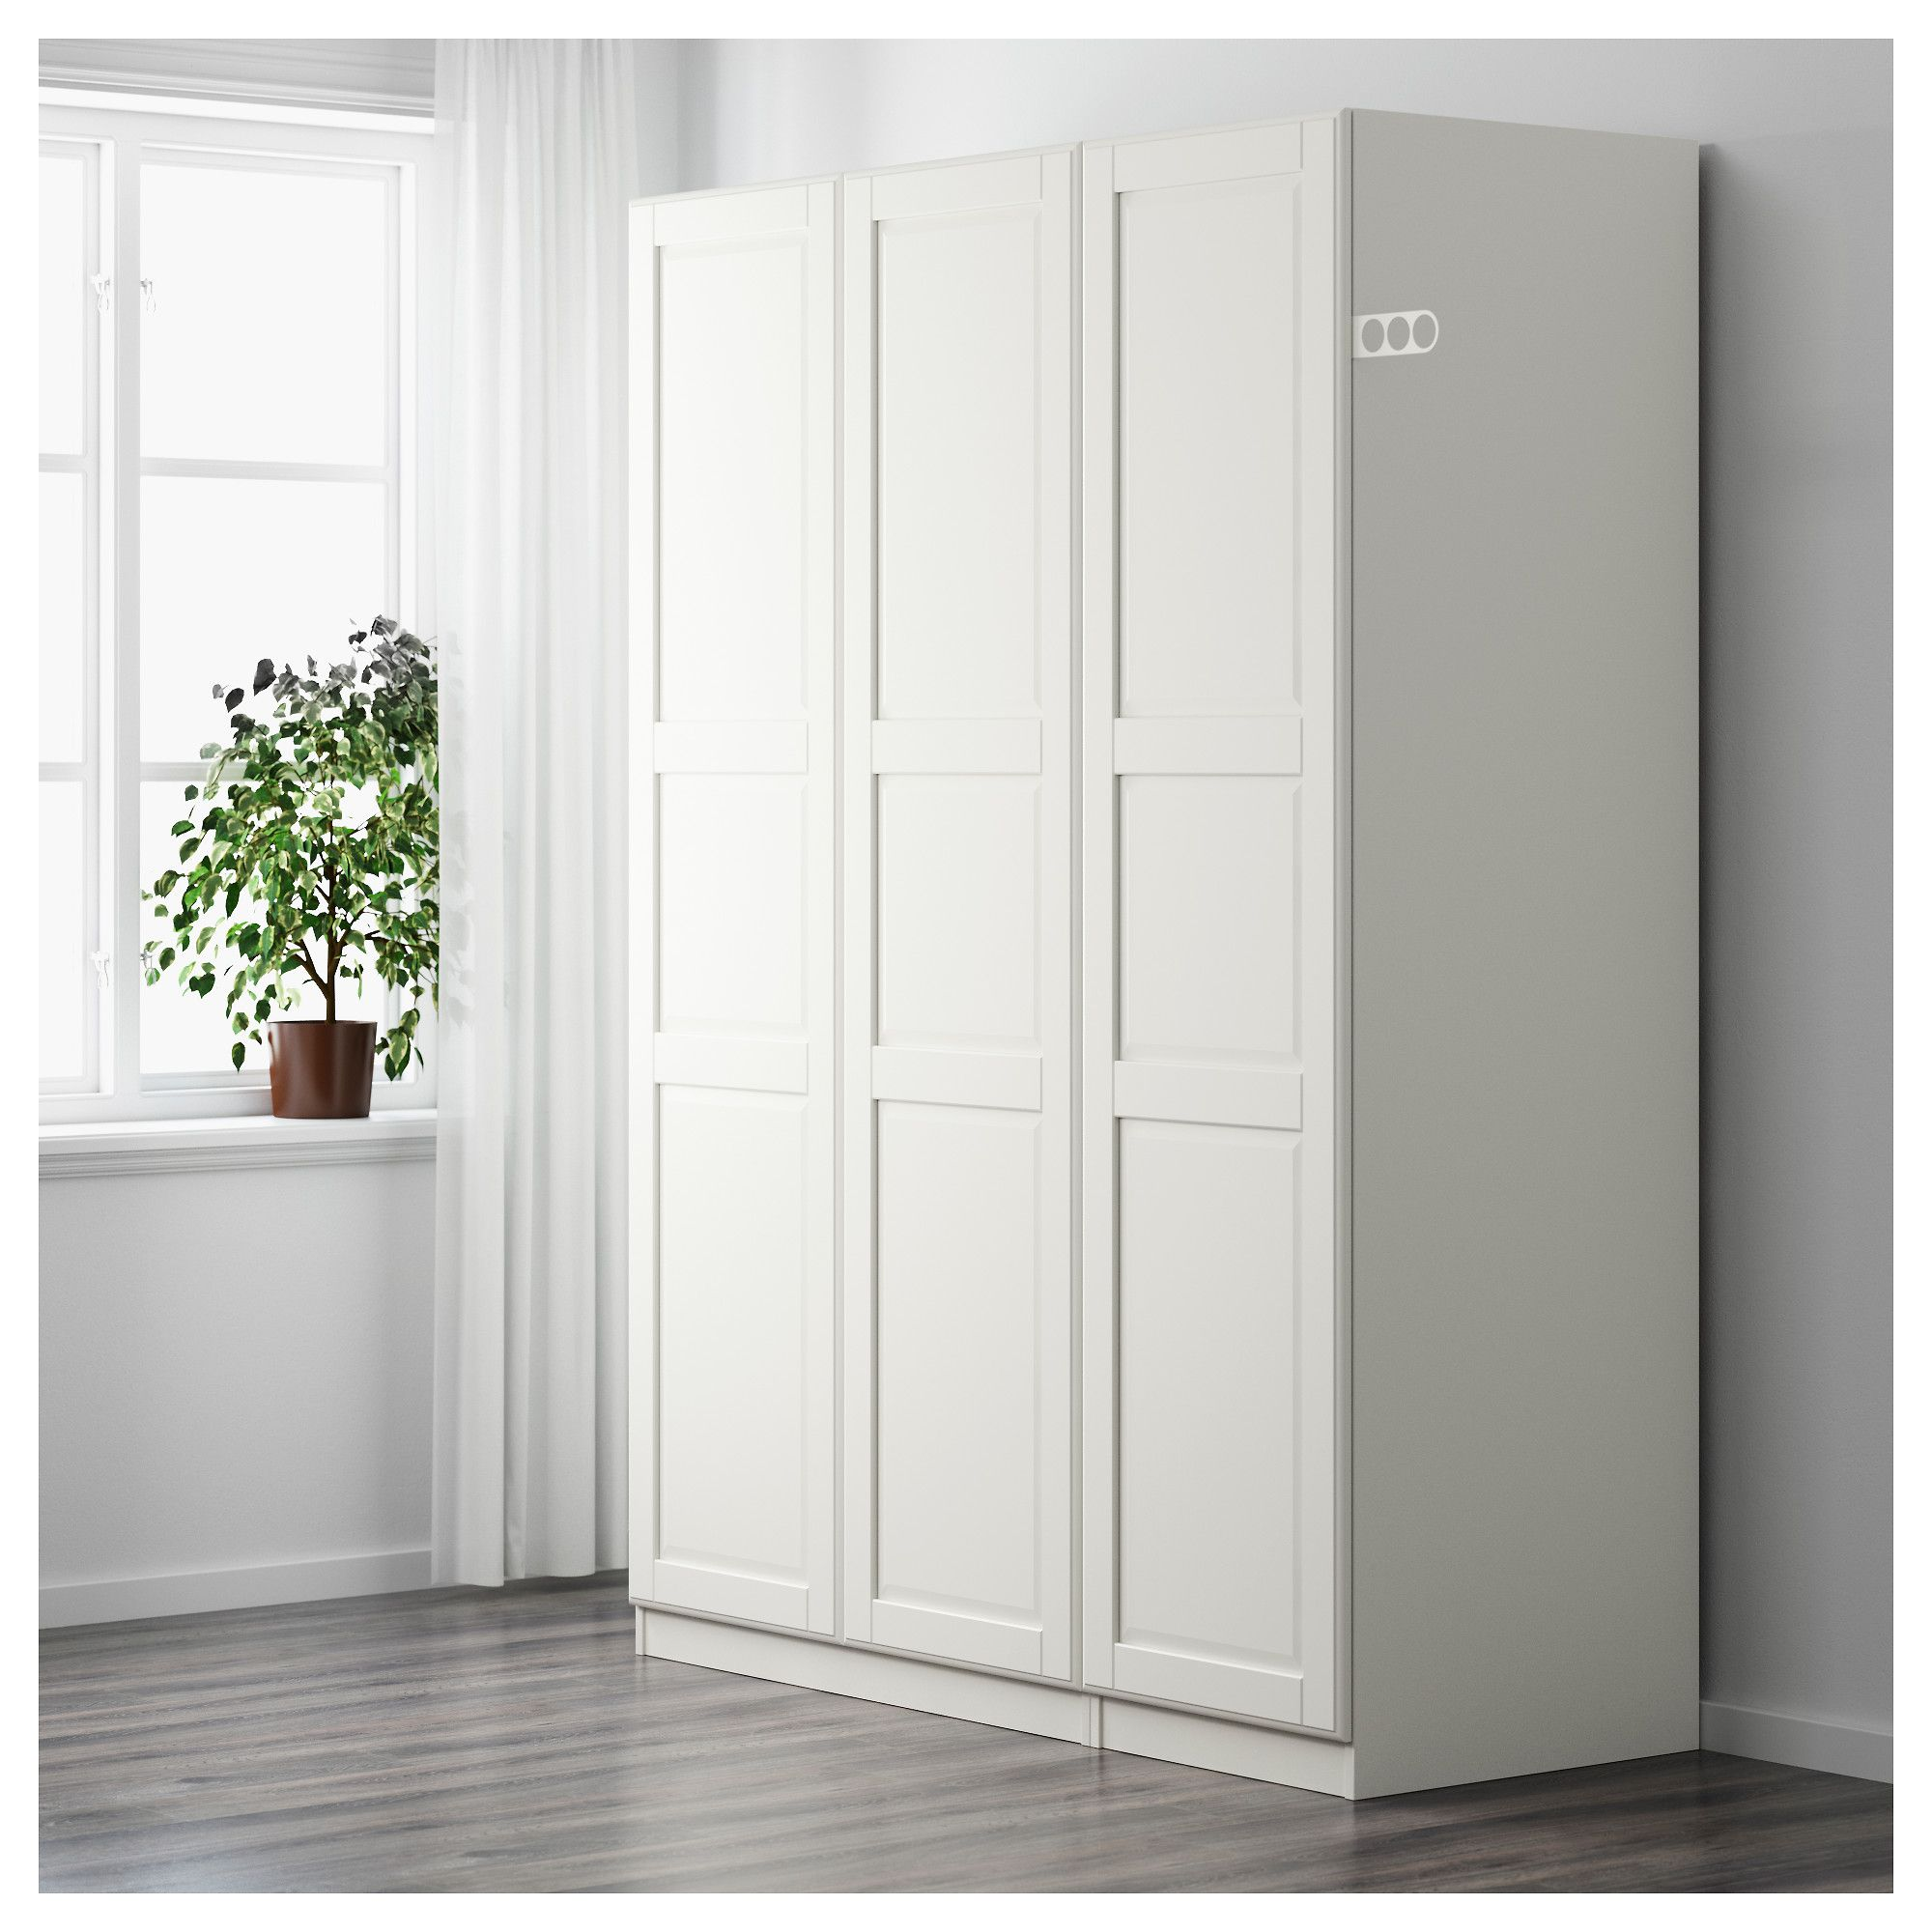 Image Result For Pax Tyssedal Mums Apt In 2019 Ikea Pax